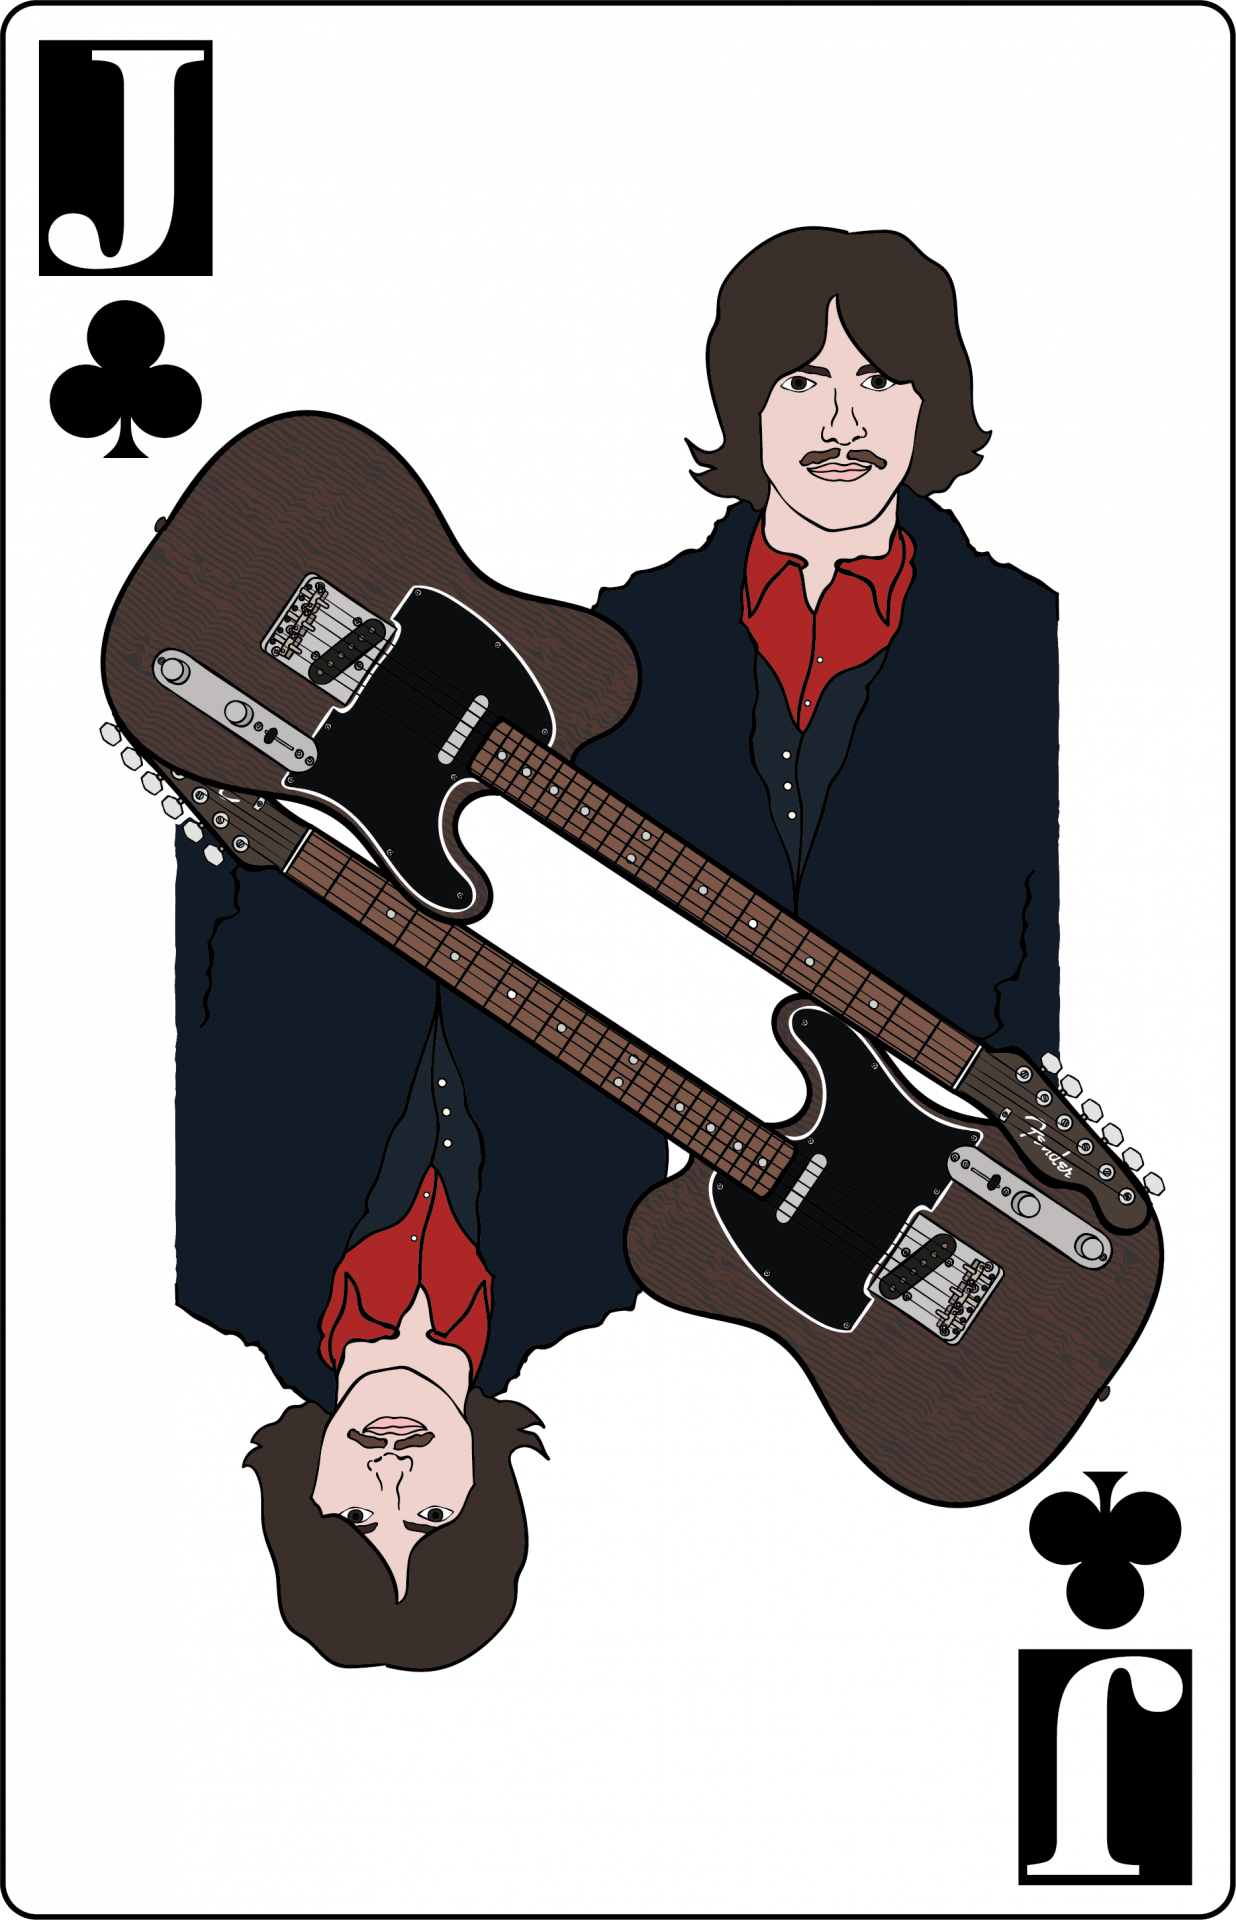 Illustration, George Harrison on a Jack of Clubs playing card, accompanied by a Fender Telecaster guitar